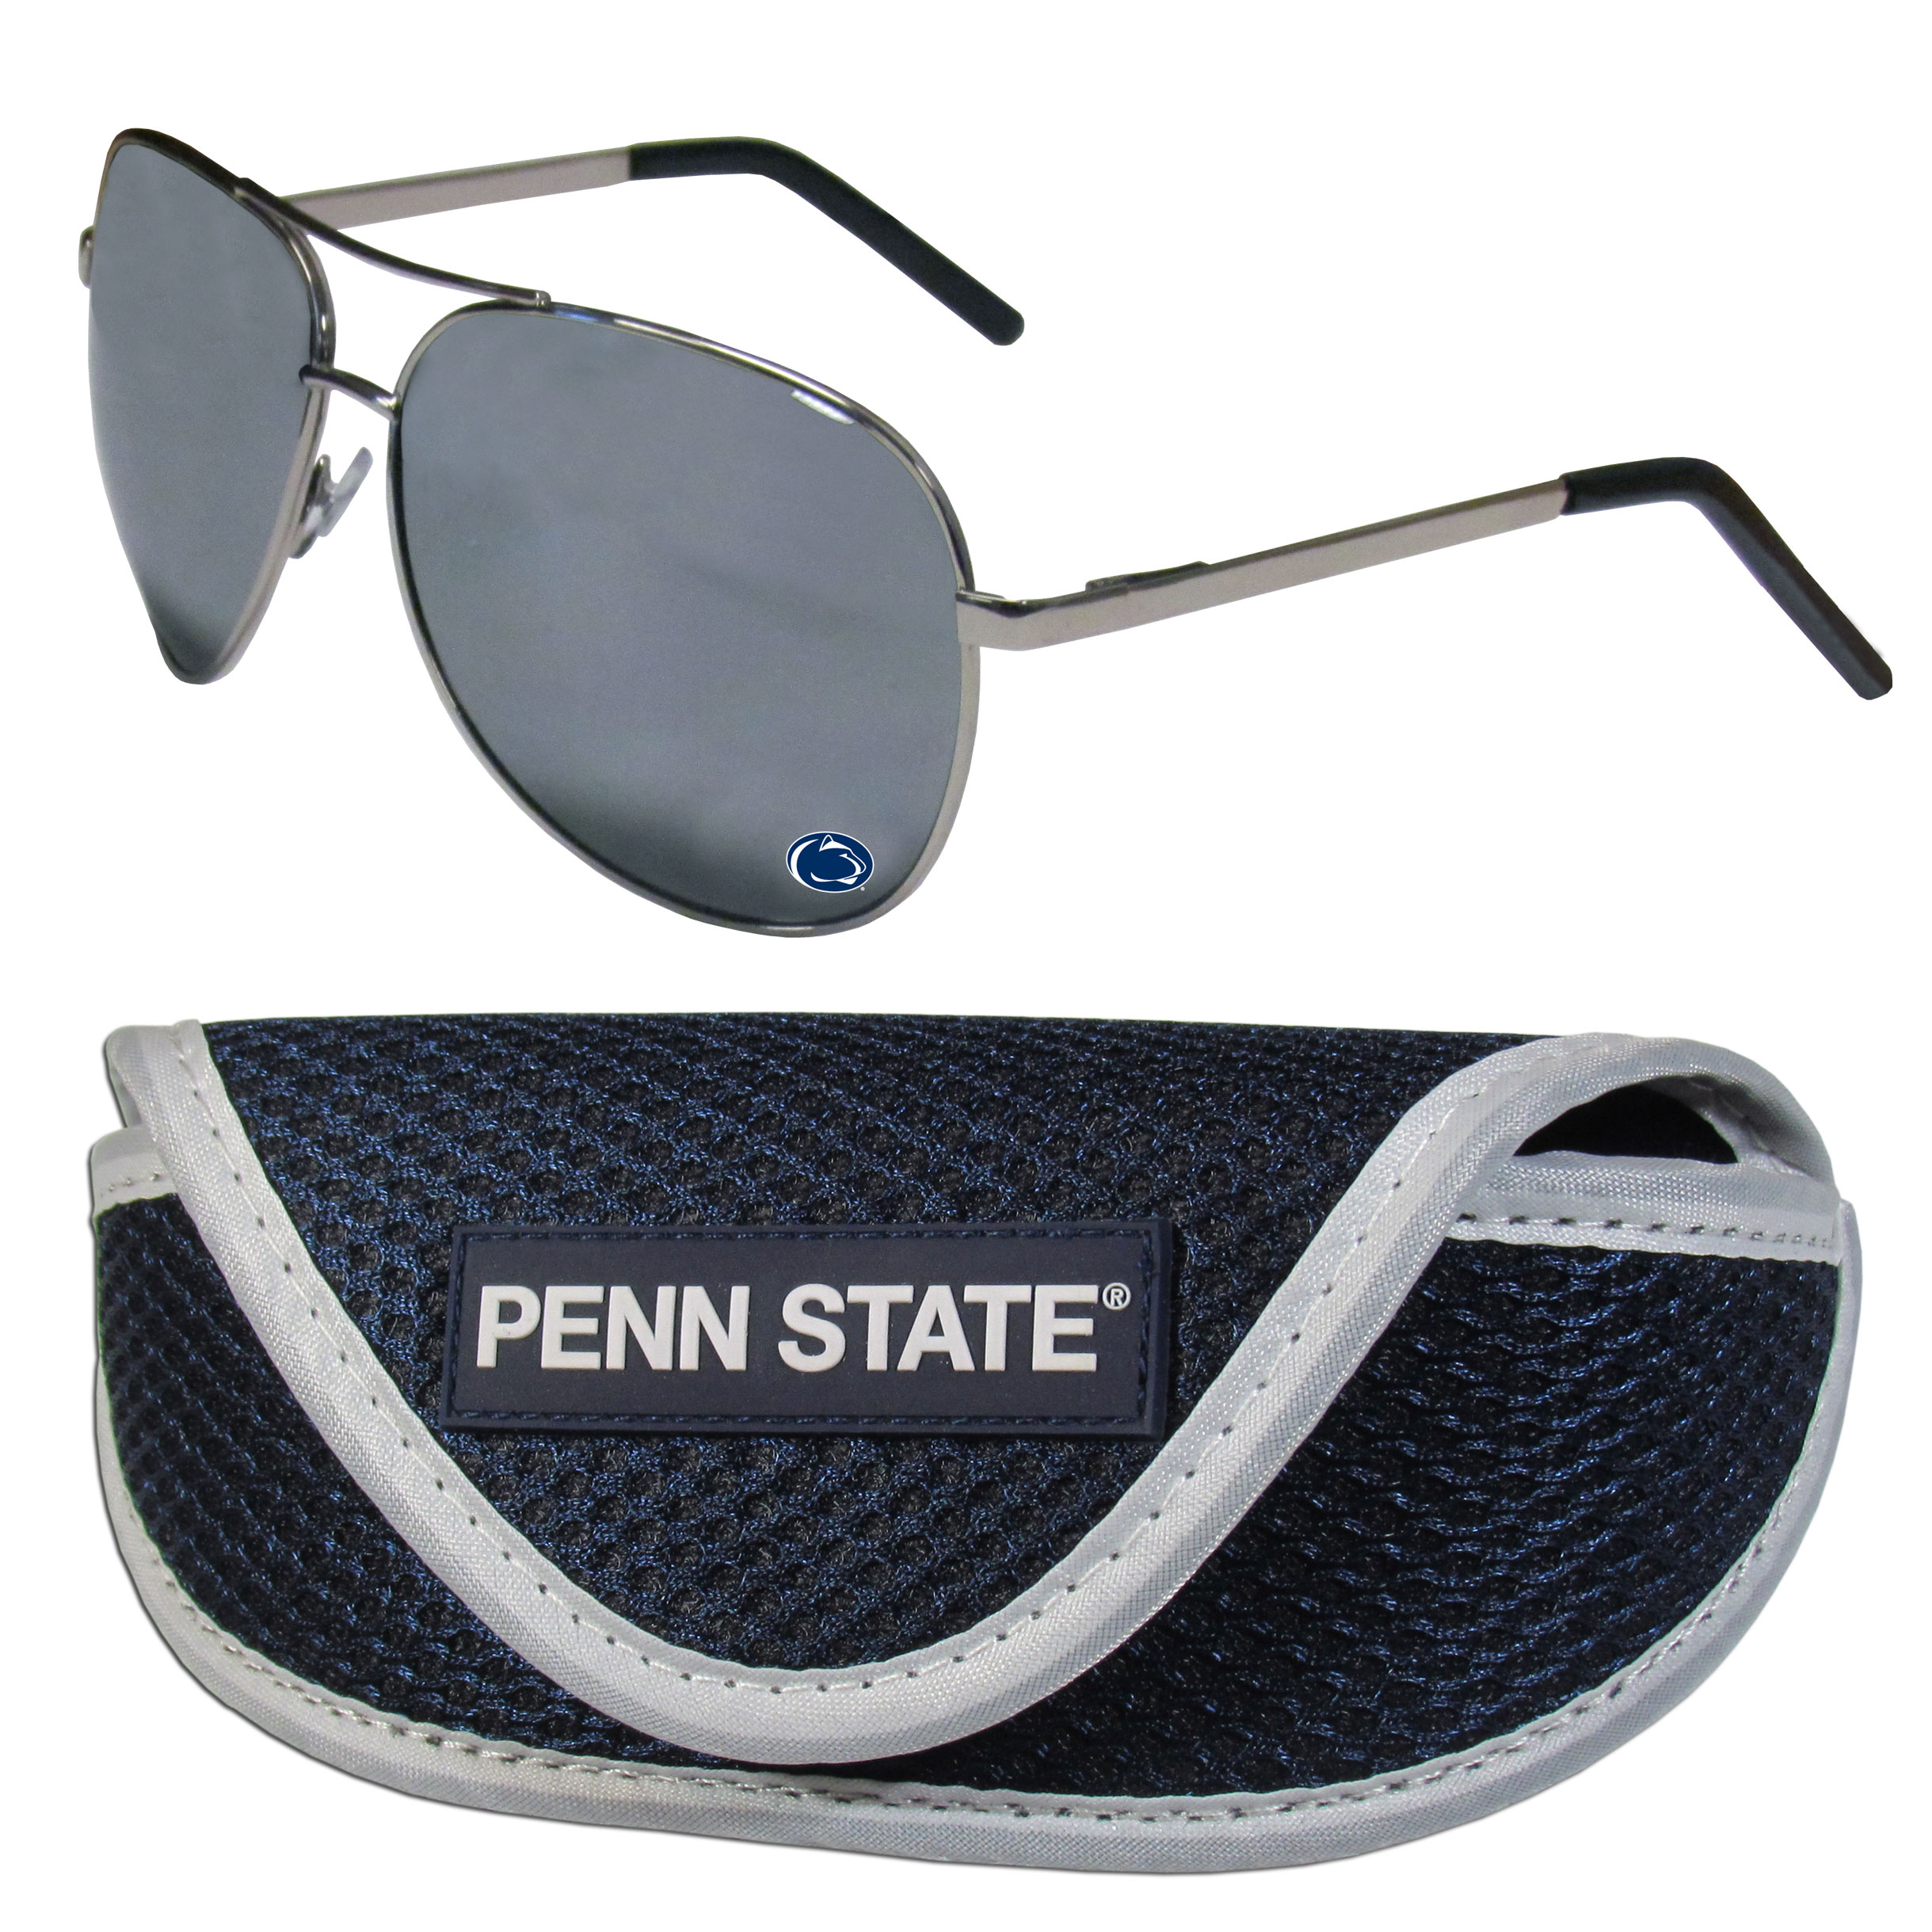 Penn St. Nittany Lions Aviator Sunglasses and Sports Case - Aviator sunglasses are truly an iconic retro fashion statement that never goes out-of-style. Our Penn St. Nittany Lions  aviator sunglasses pair this classic look with your love of the game. The iridium coated lenses reduce glare while driving, boating, golfing and their 100% UVA/UVB rating provides you with the maximum UV protection for all your outdoor activities. A millennial favorite, these affordable designer frames are the perfect eyewear accessory for a sports fan that is looking for high-quality at an affordable price. The durable, flex hinged frames are tough enough for hiking and camping or if you prefer sun bathing by the pool or on the beach these shades will really stand the test of time. The sunglasses come with a sporty case which has a large team logo on the lid that will make even the most die-hard fan proud!